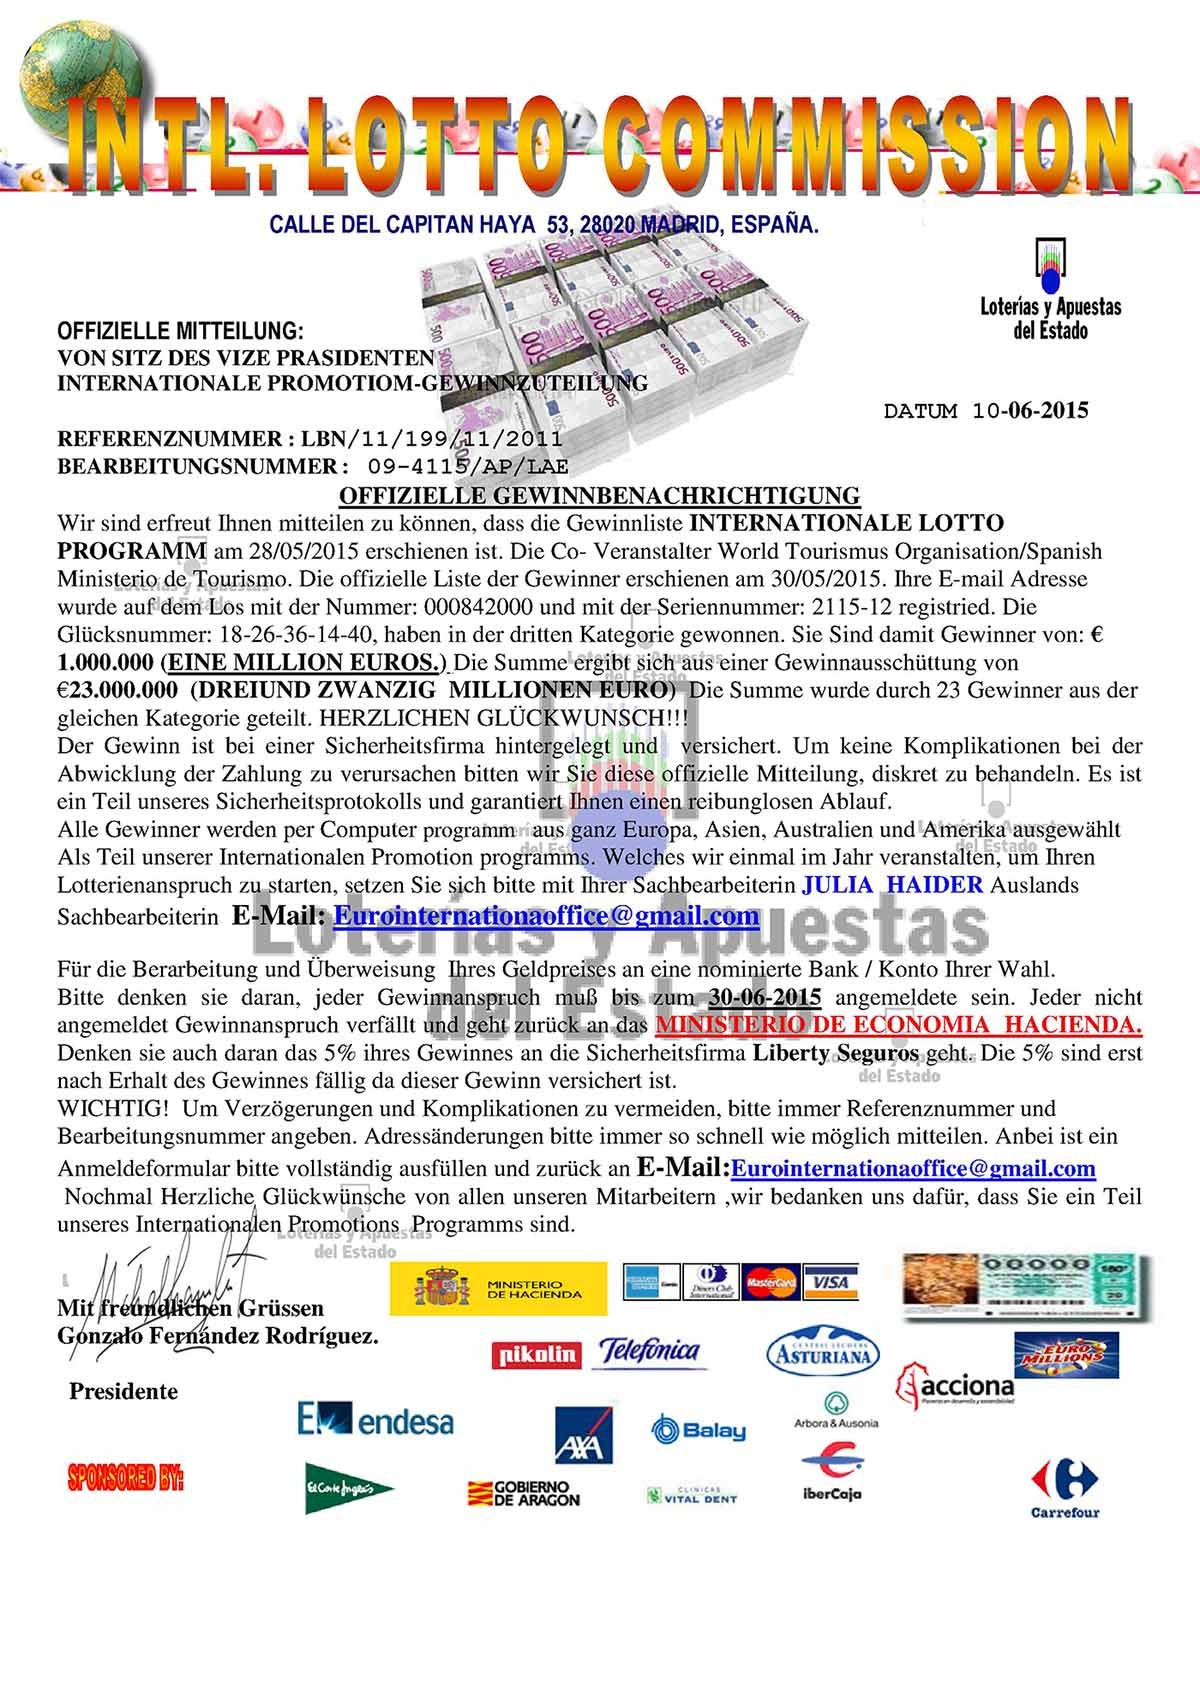 INTERNATIALE LOTTO PROGRAMMS